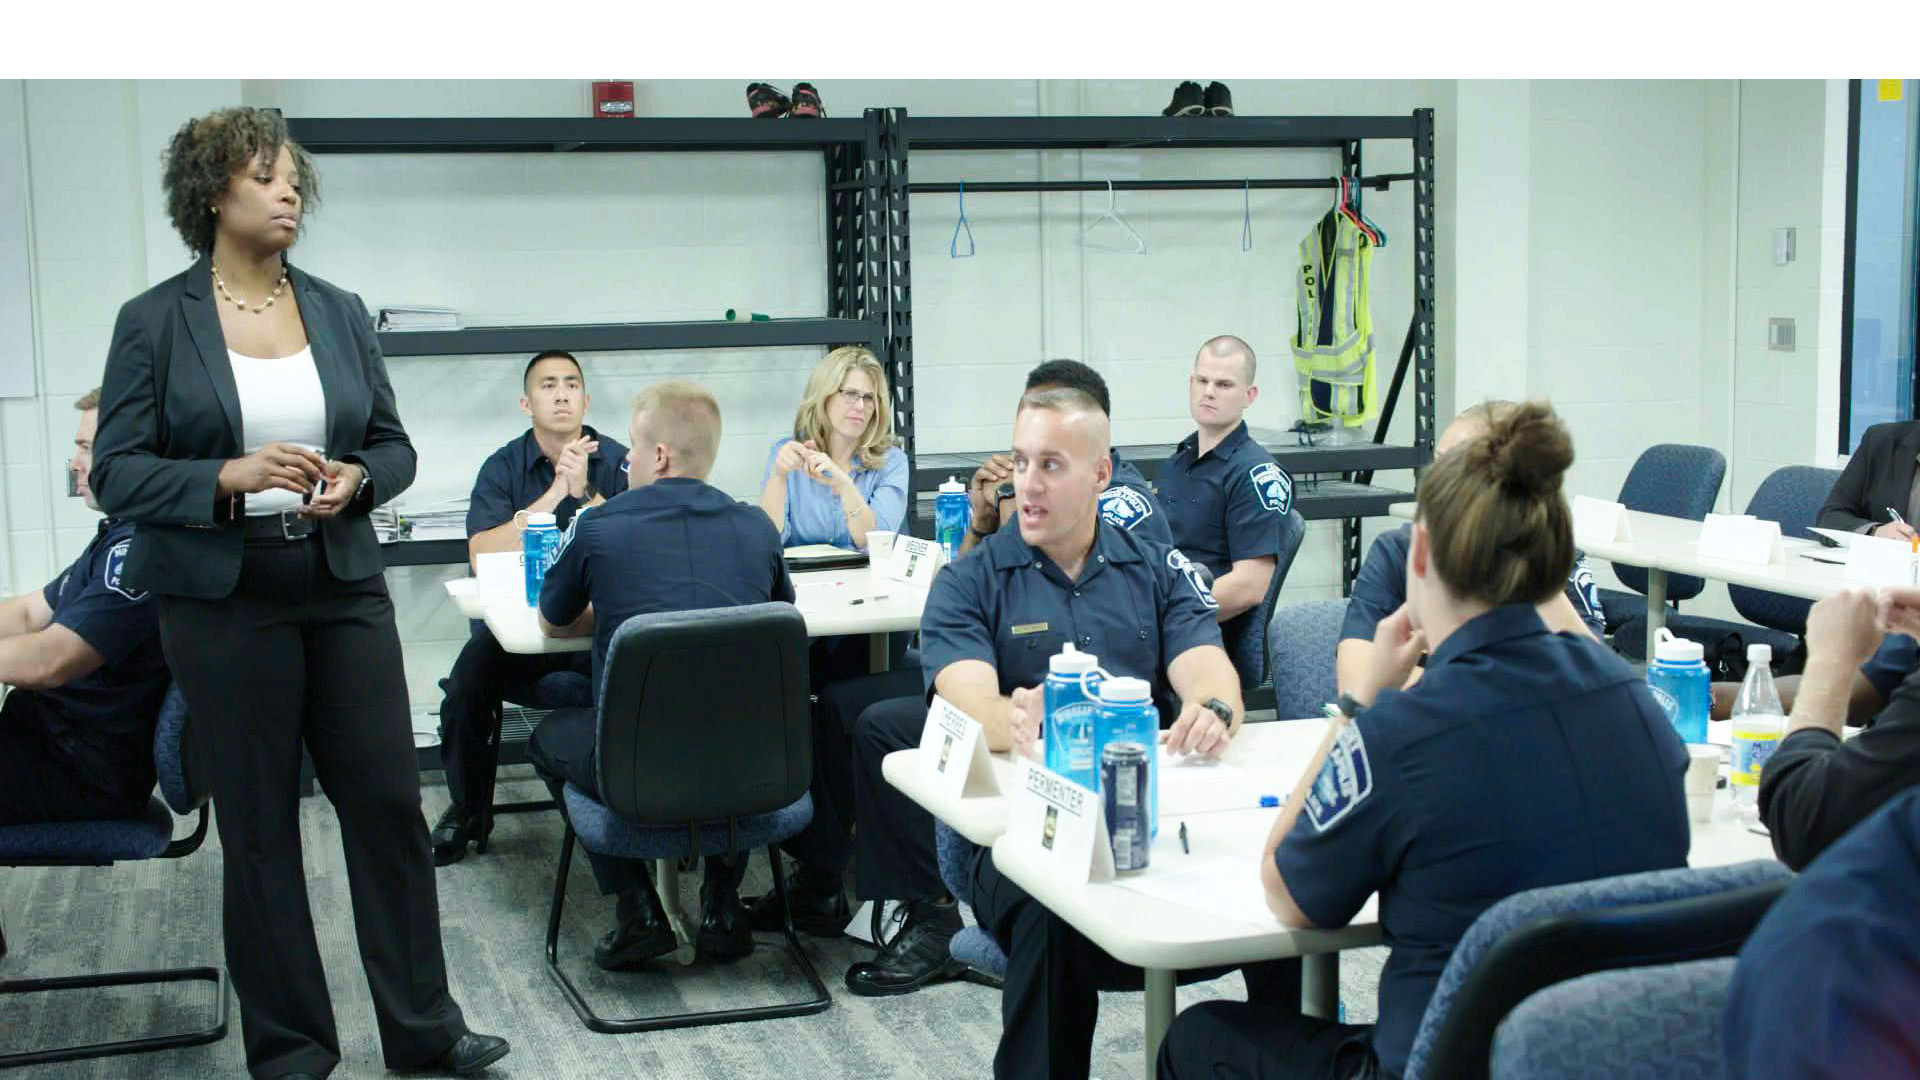 Sgt. Alice White training cadets in procedural justice